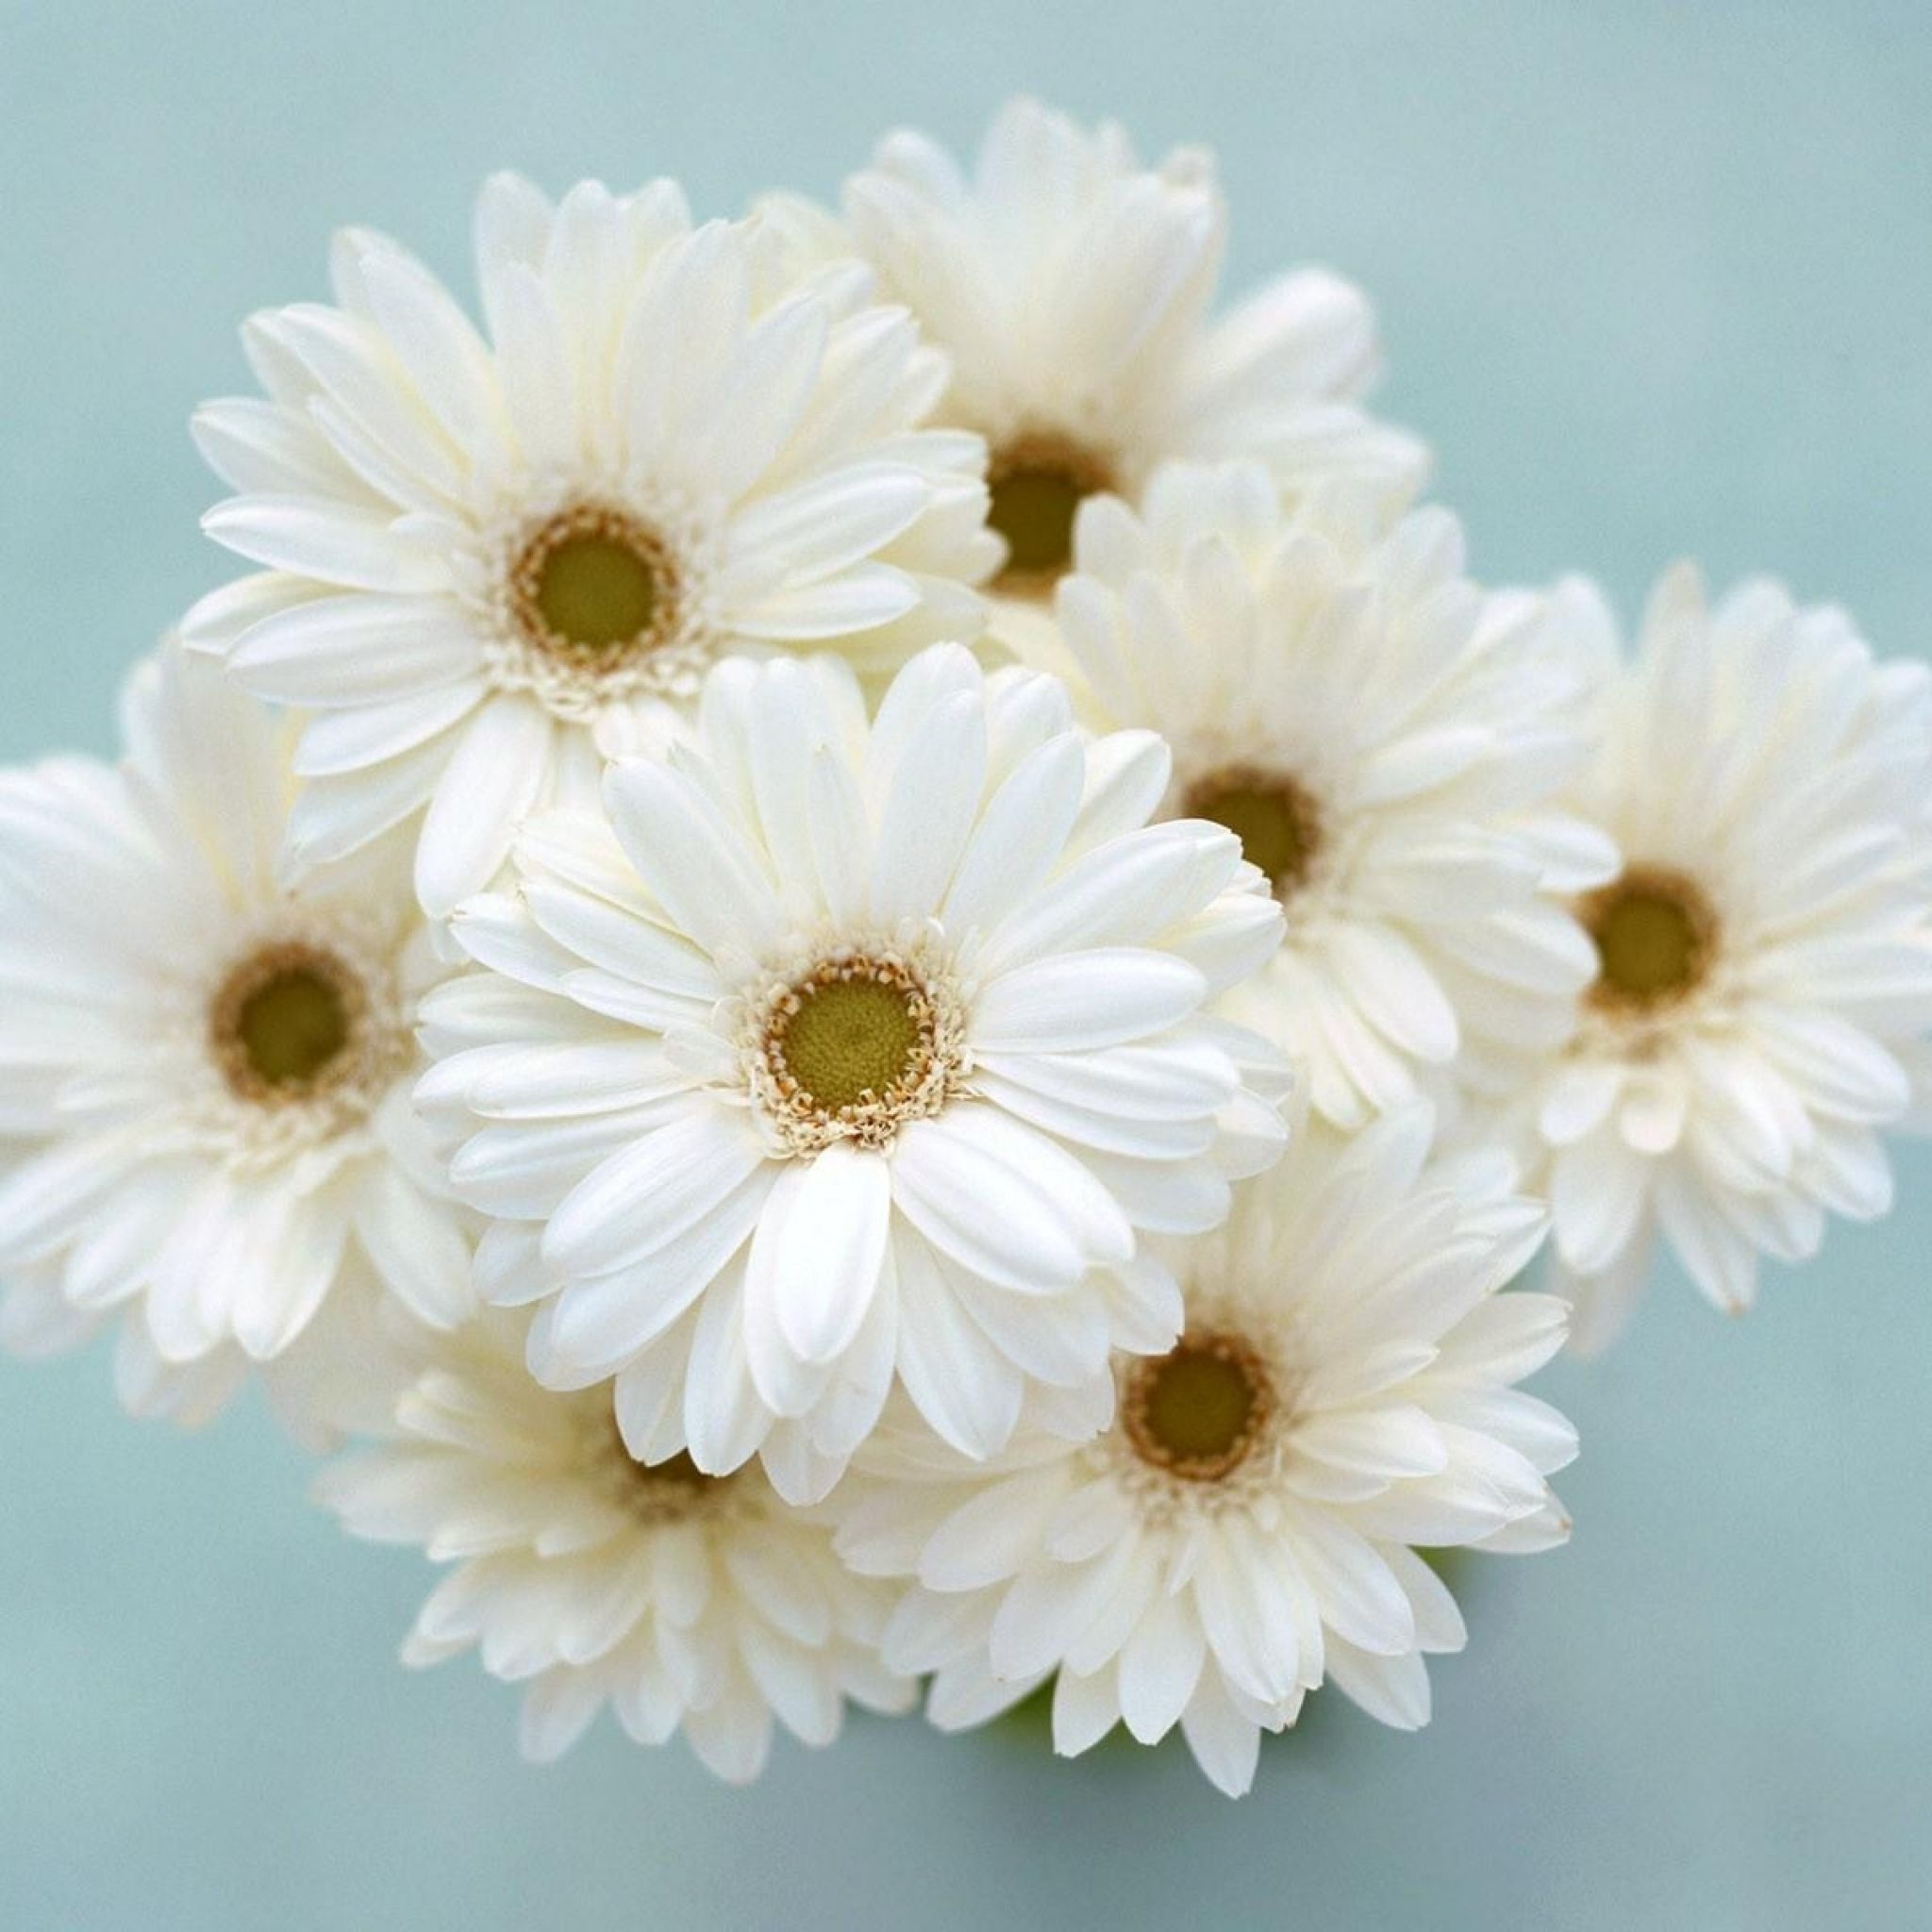 White Gerbera Flower Bouquet Tap To See More Clean White Simplistic Wallpapers Mobile9 White Flower Bouquet White Flowers Flowers